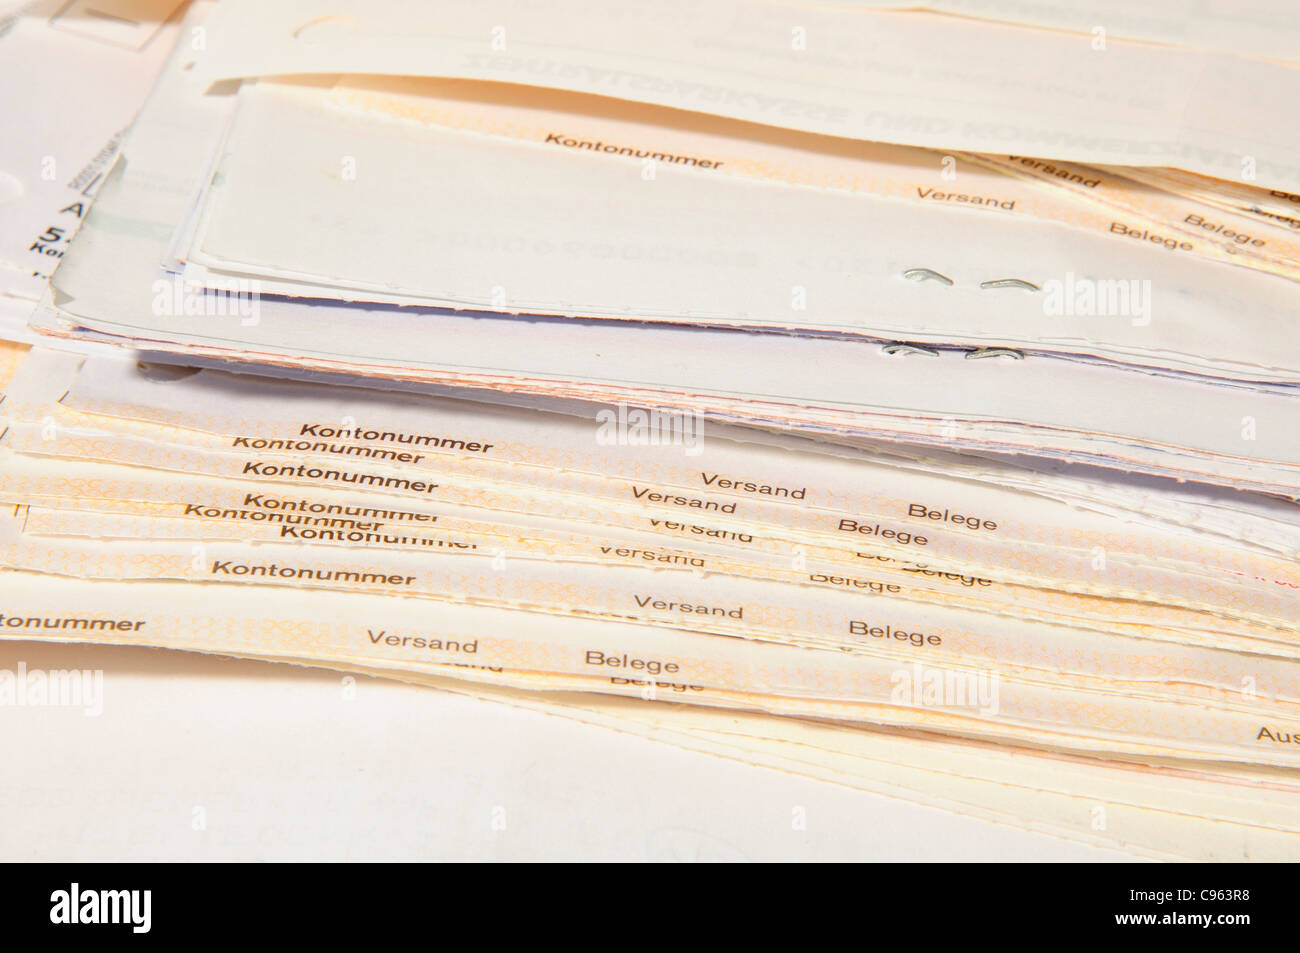 Bank account statements documents - Stock Image